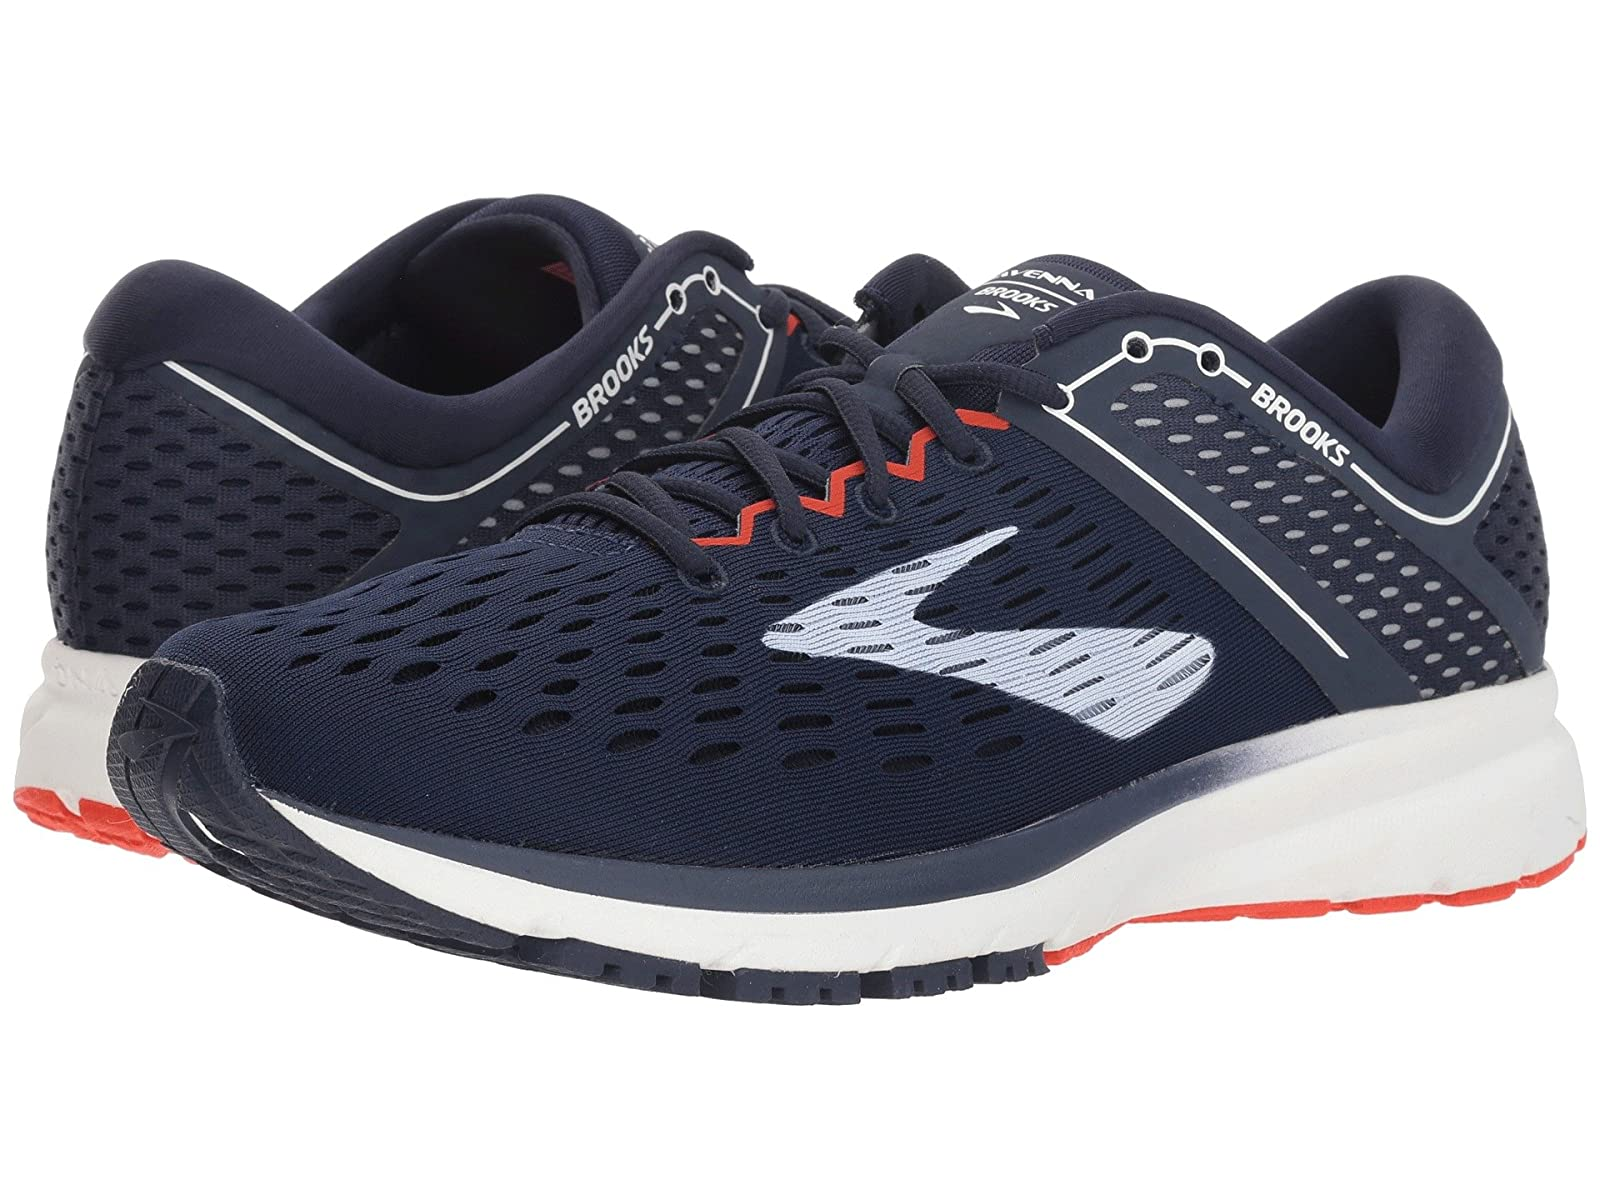 Brooks Ravenna 9Atmospheric grades have affordable shoes